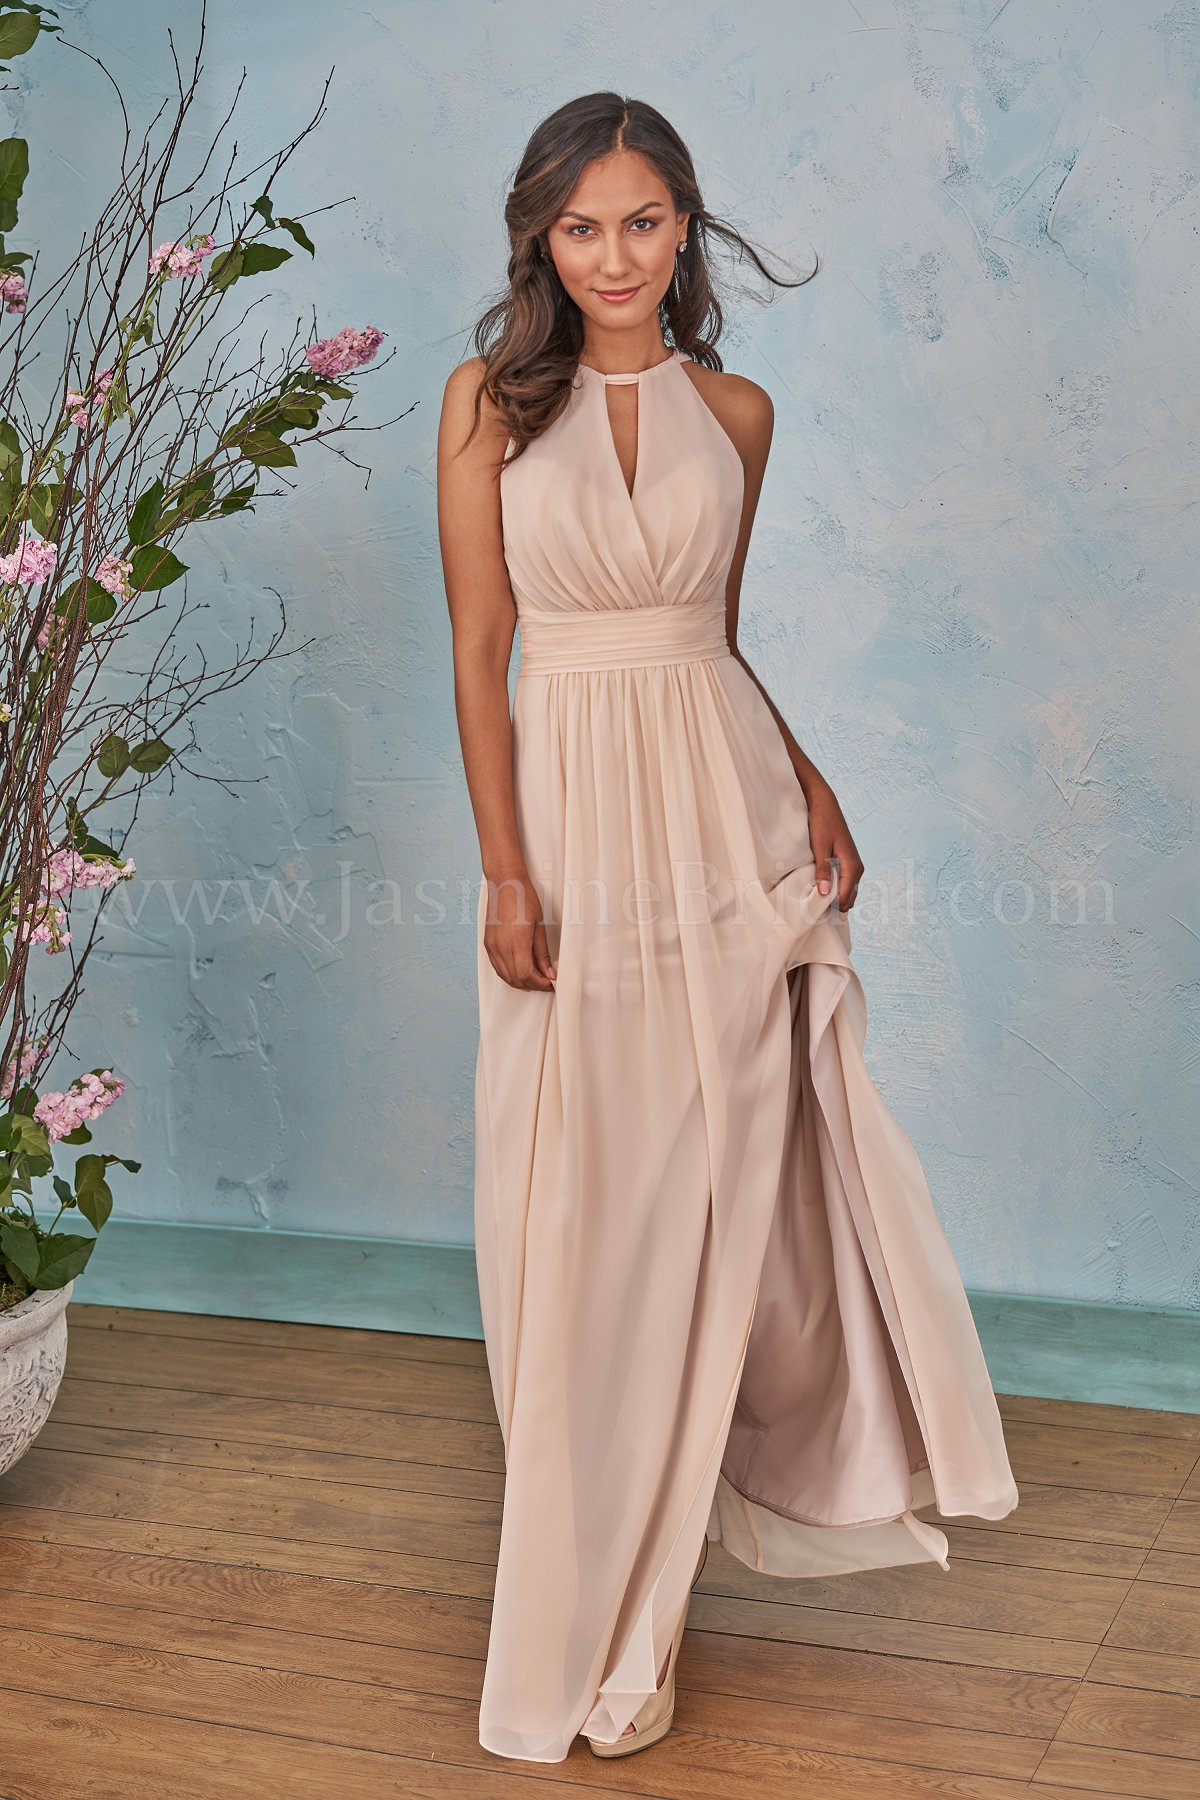 25cdc0d0b04 B203004 Long Halter Neckline Poly Chiffon Bridesmaid Dress with Front Slit